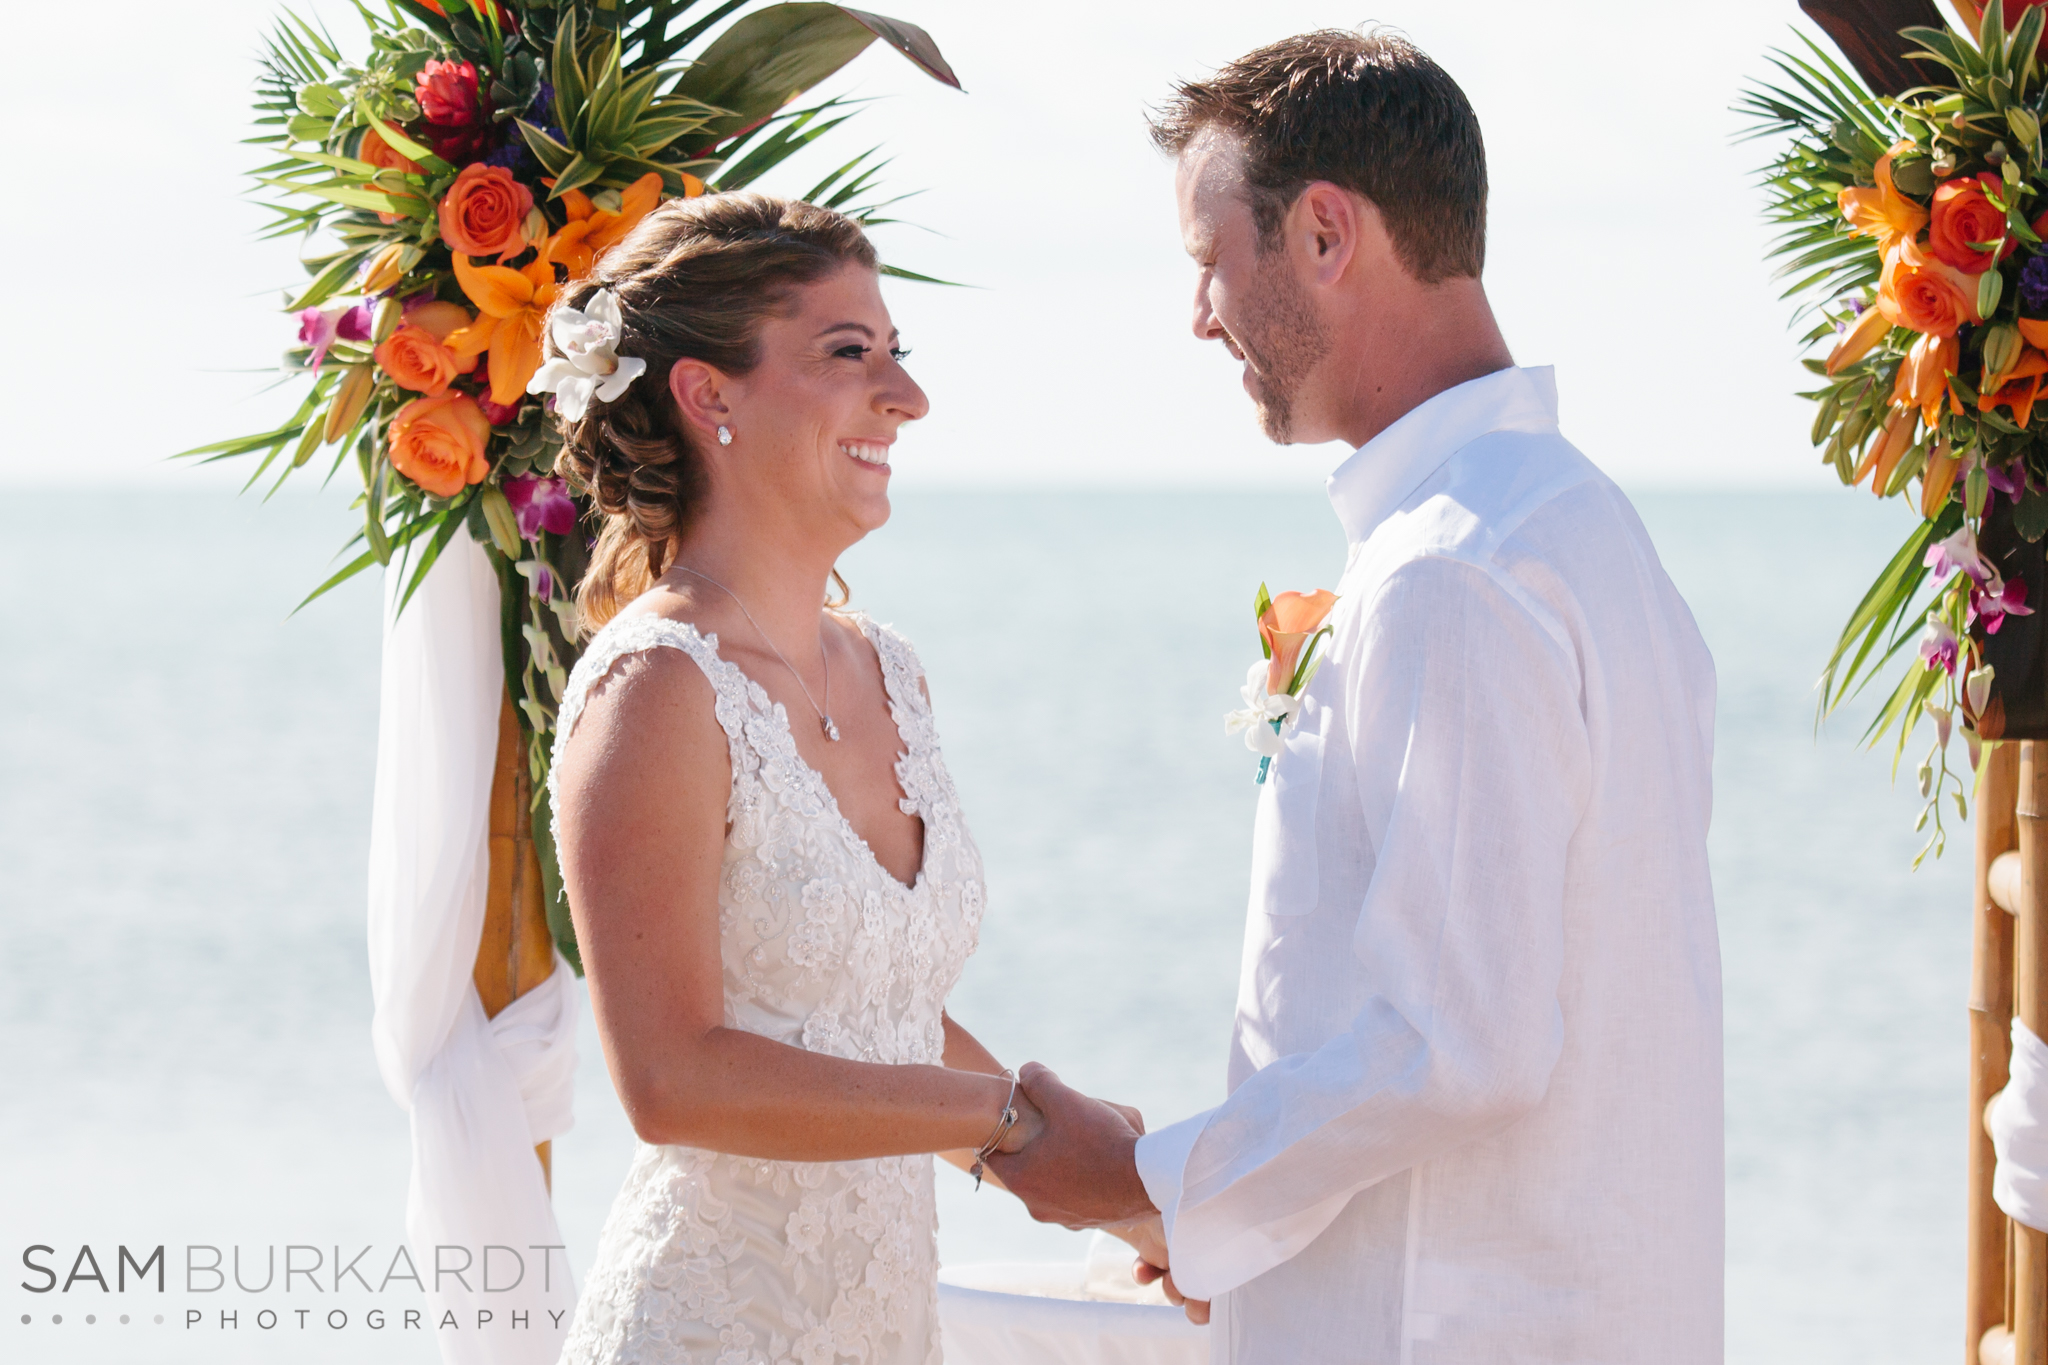 samburkardt_key_west_wedding_marathon_florida_summer_beach_ocean_front_0031.jpg